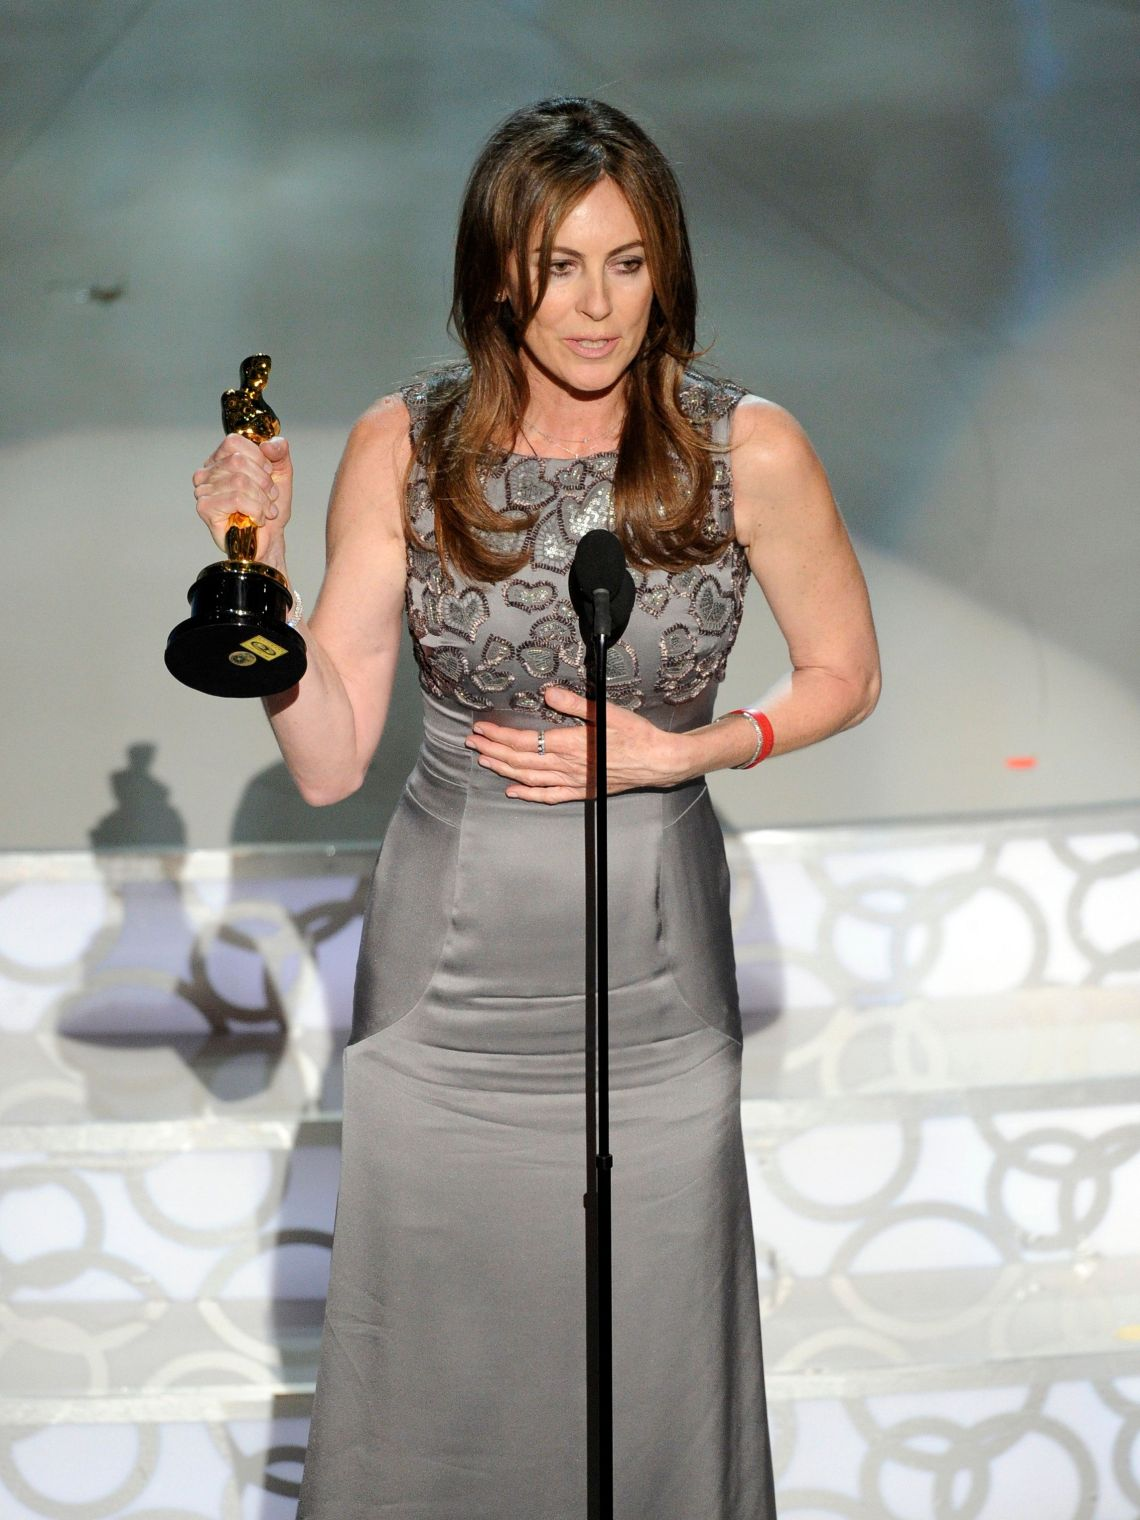 Kathryn's efforts at the helm of The Hurt Locker made her the only woman to have won in the Best Director category.In the decade since her win, only one woman, Greta Gerwig, has been nominated in the same category.